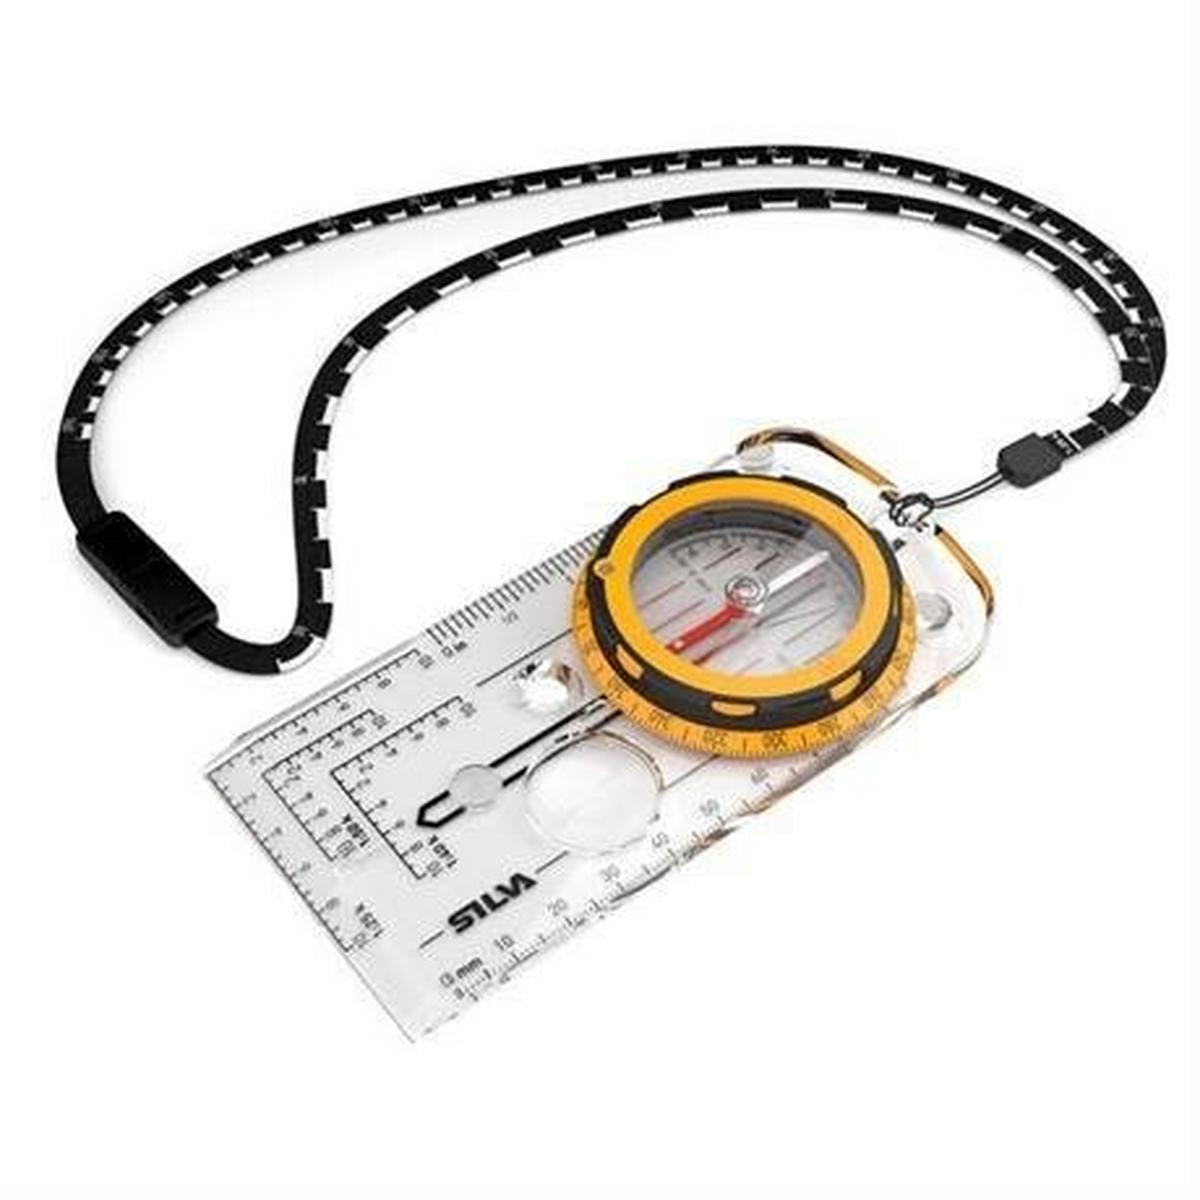 Silva Compass NEW Expedition